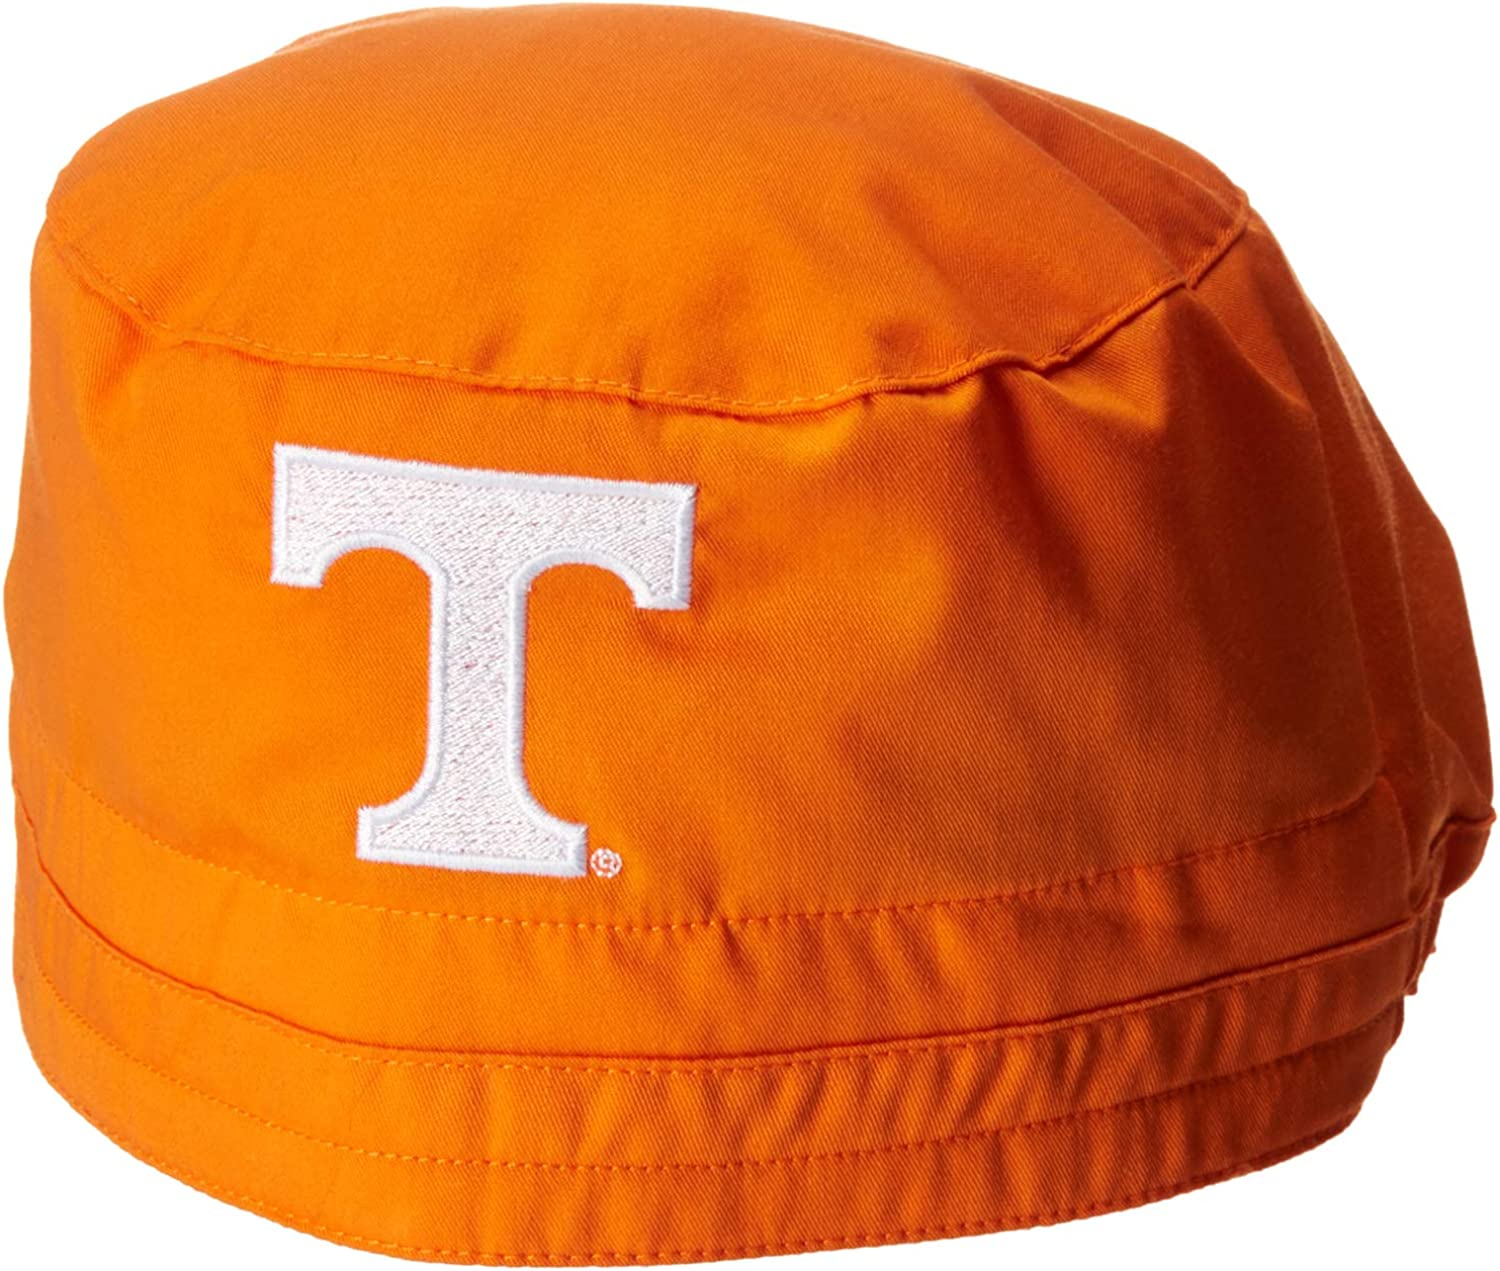 One Size Fits Most Men/'s University of Tennessee Volunteers Scrub Cap//Hat